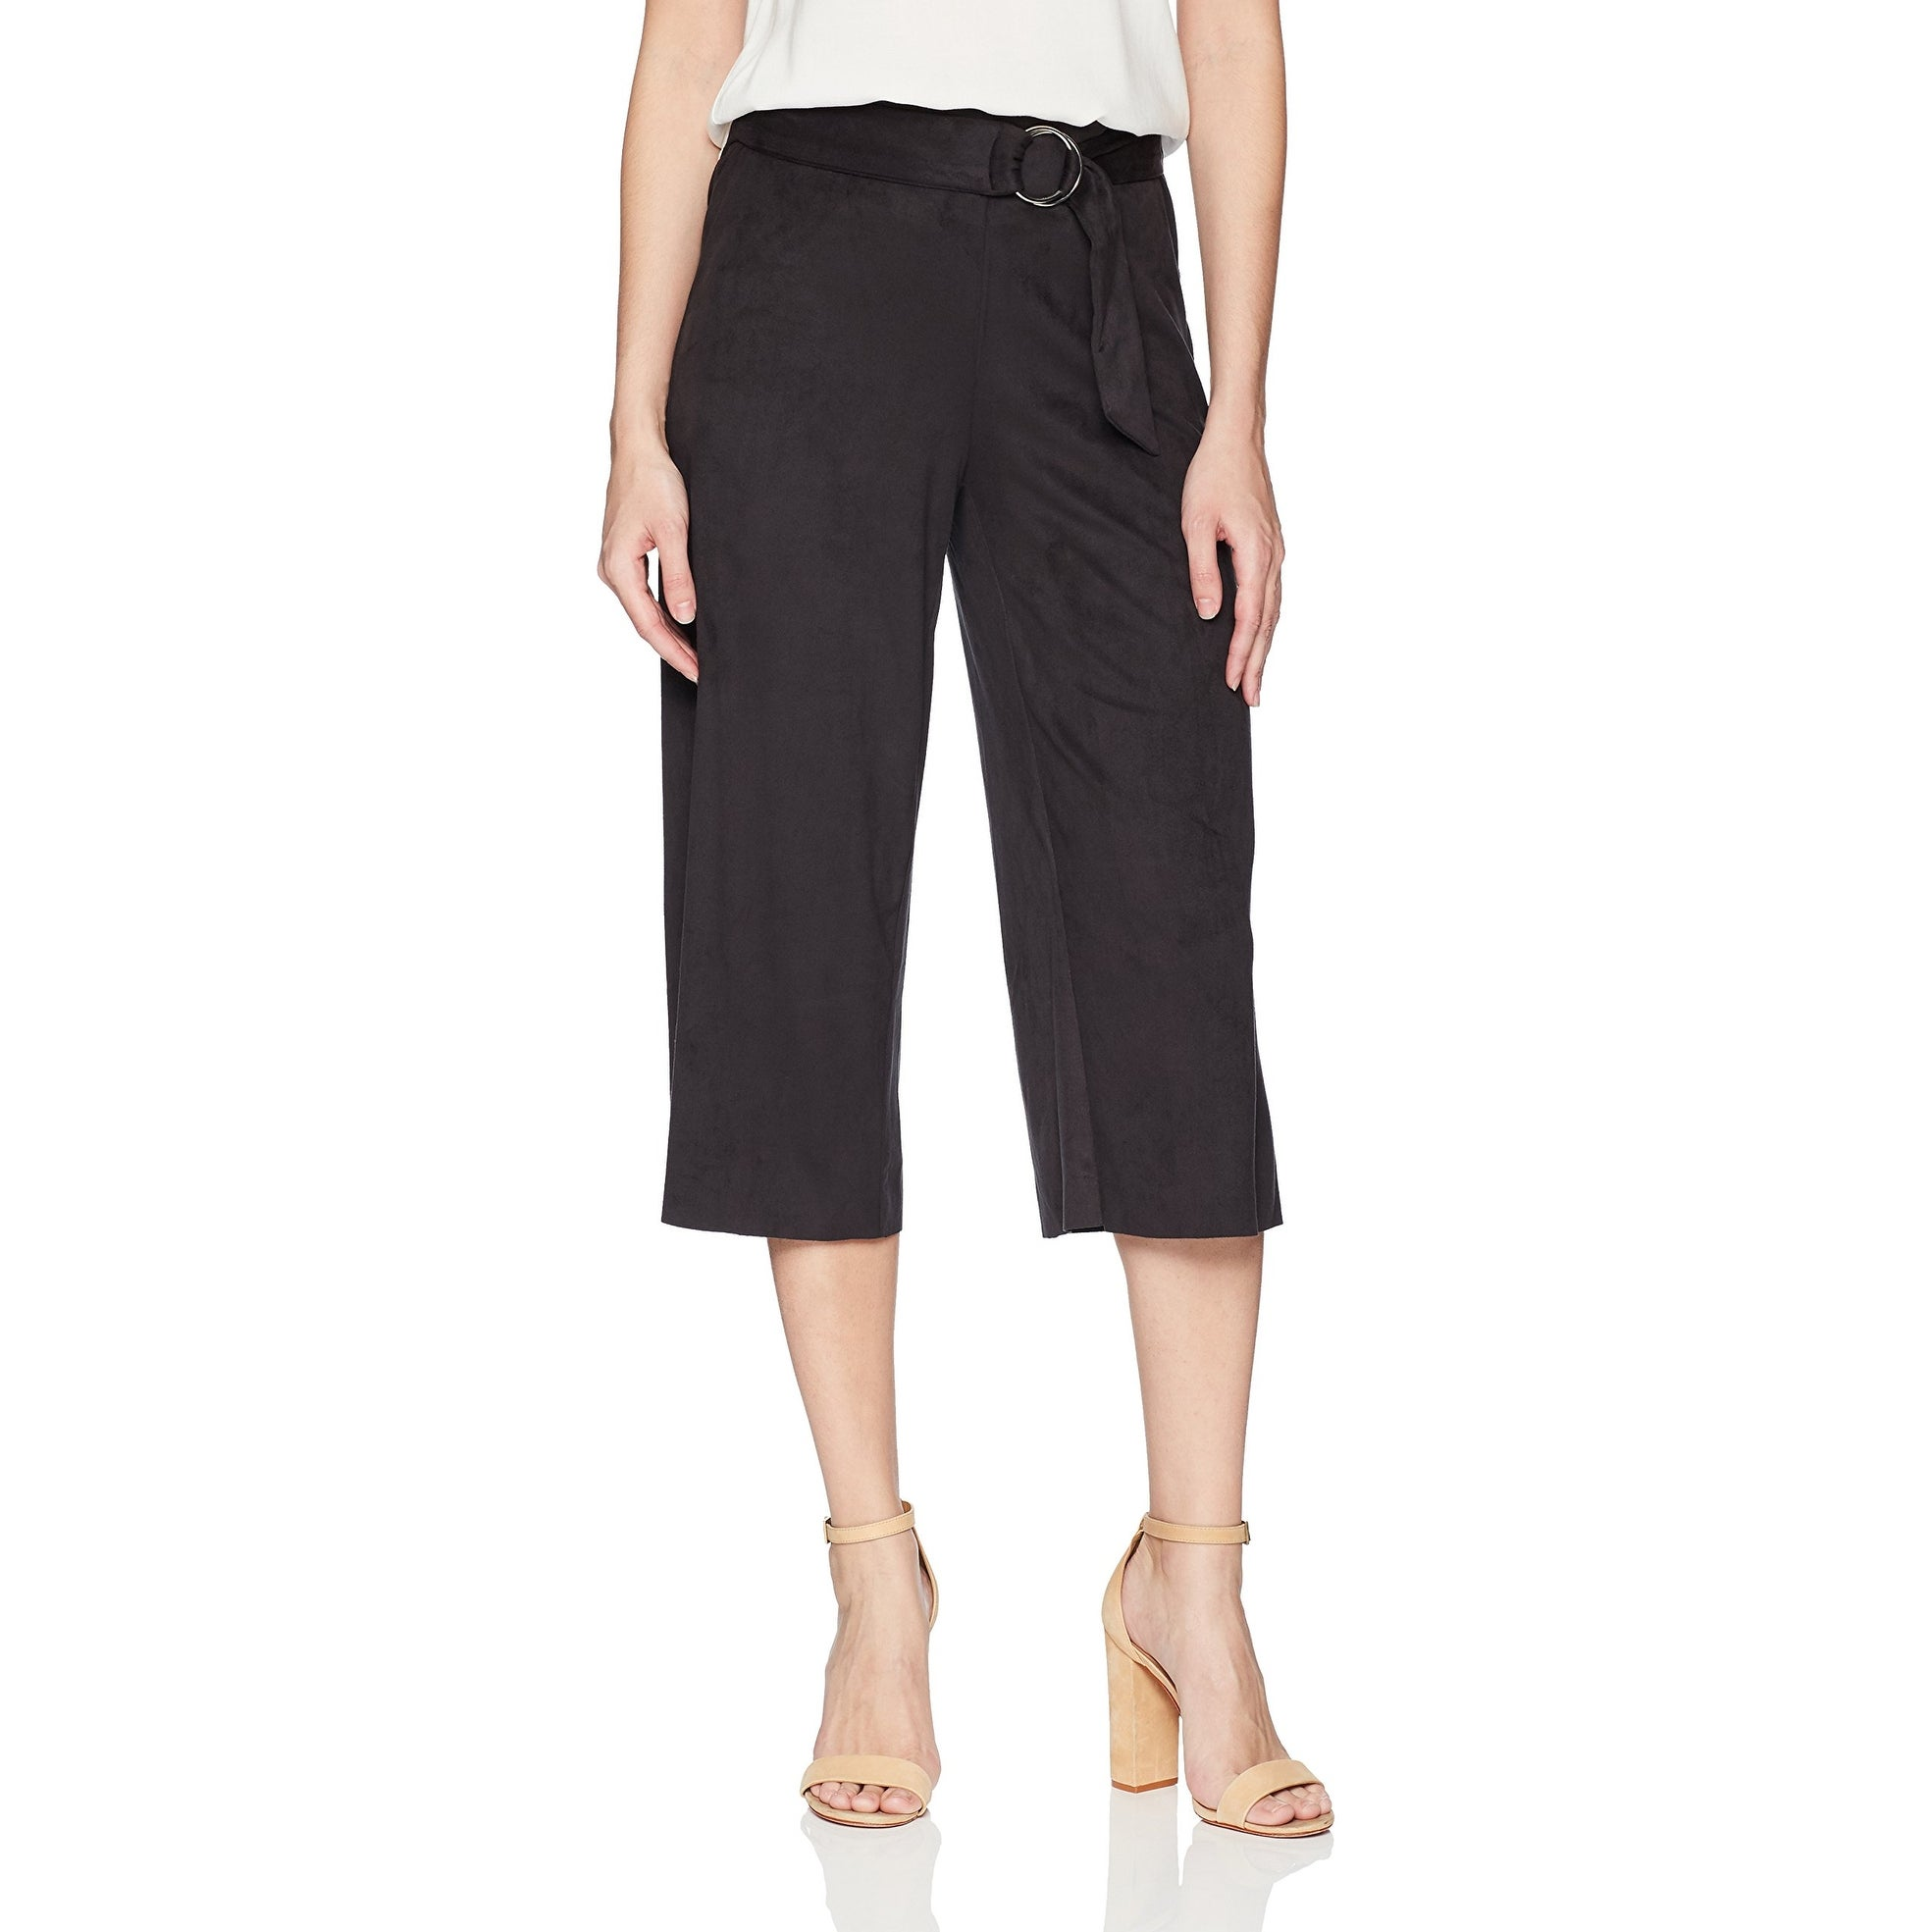 83bfd89926a5f Pants | Find Great Women's Clothing Deals Shopping at Overstock